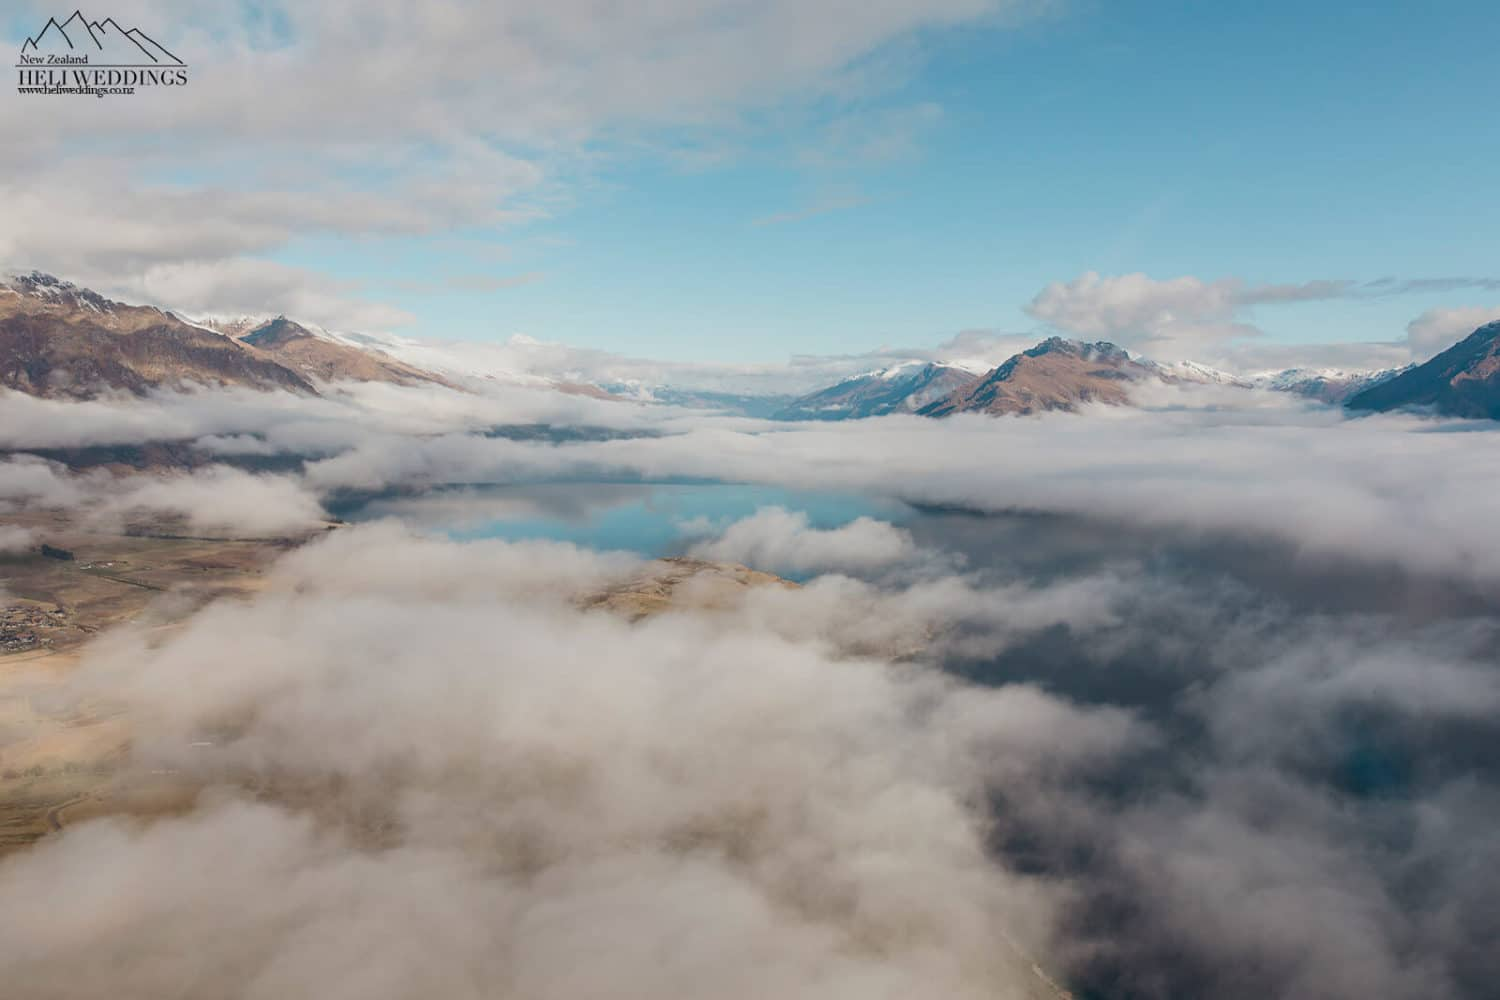 Clouds over the lake in Queenstown